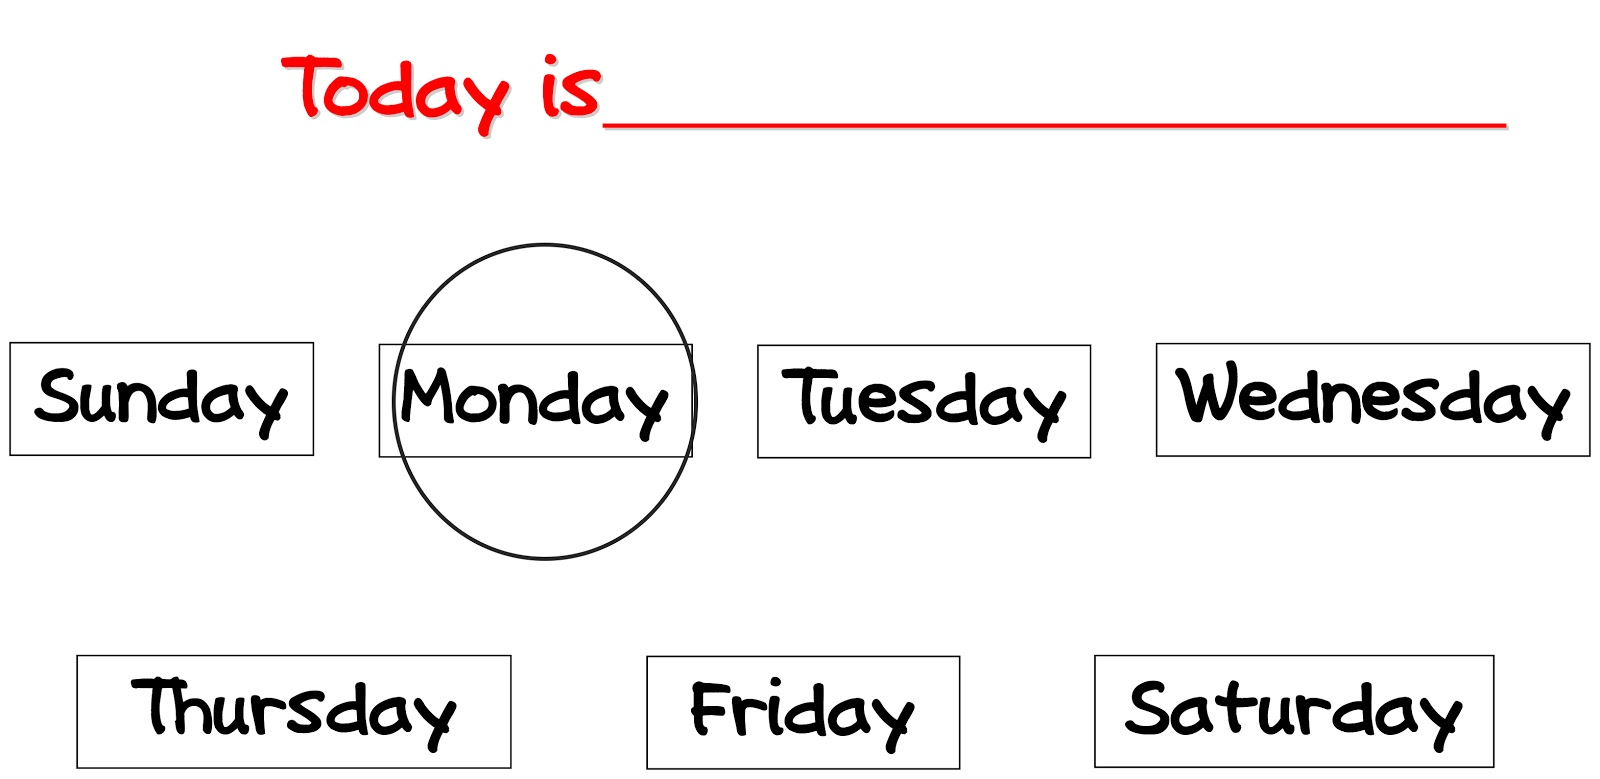 Days Of The Week Printables The days of the week.